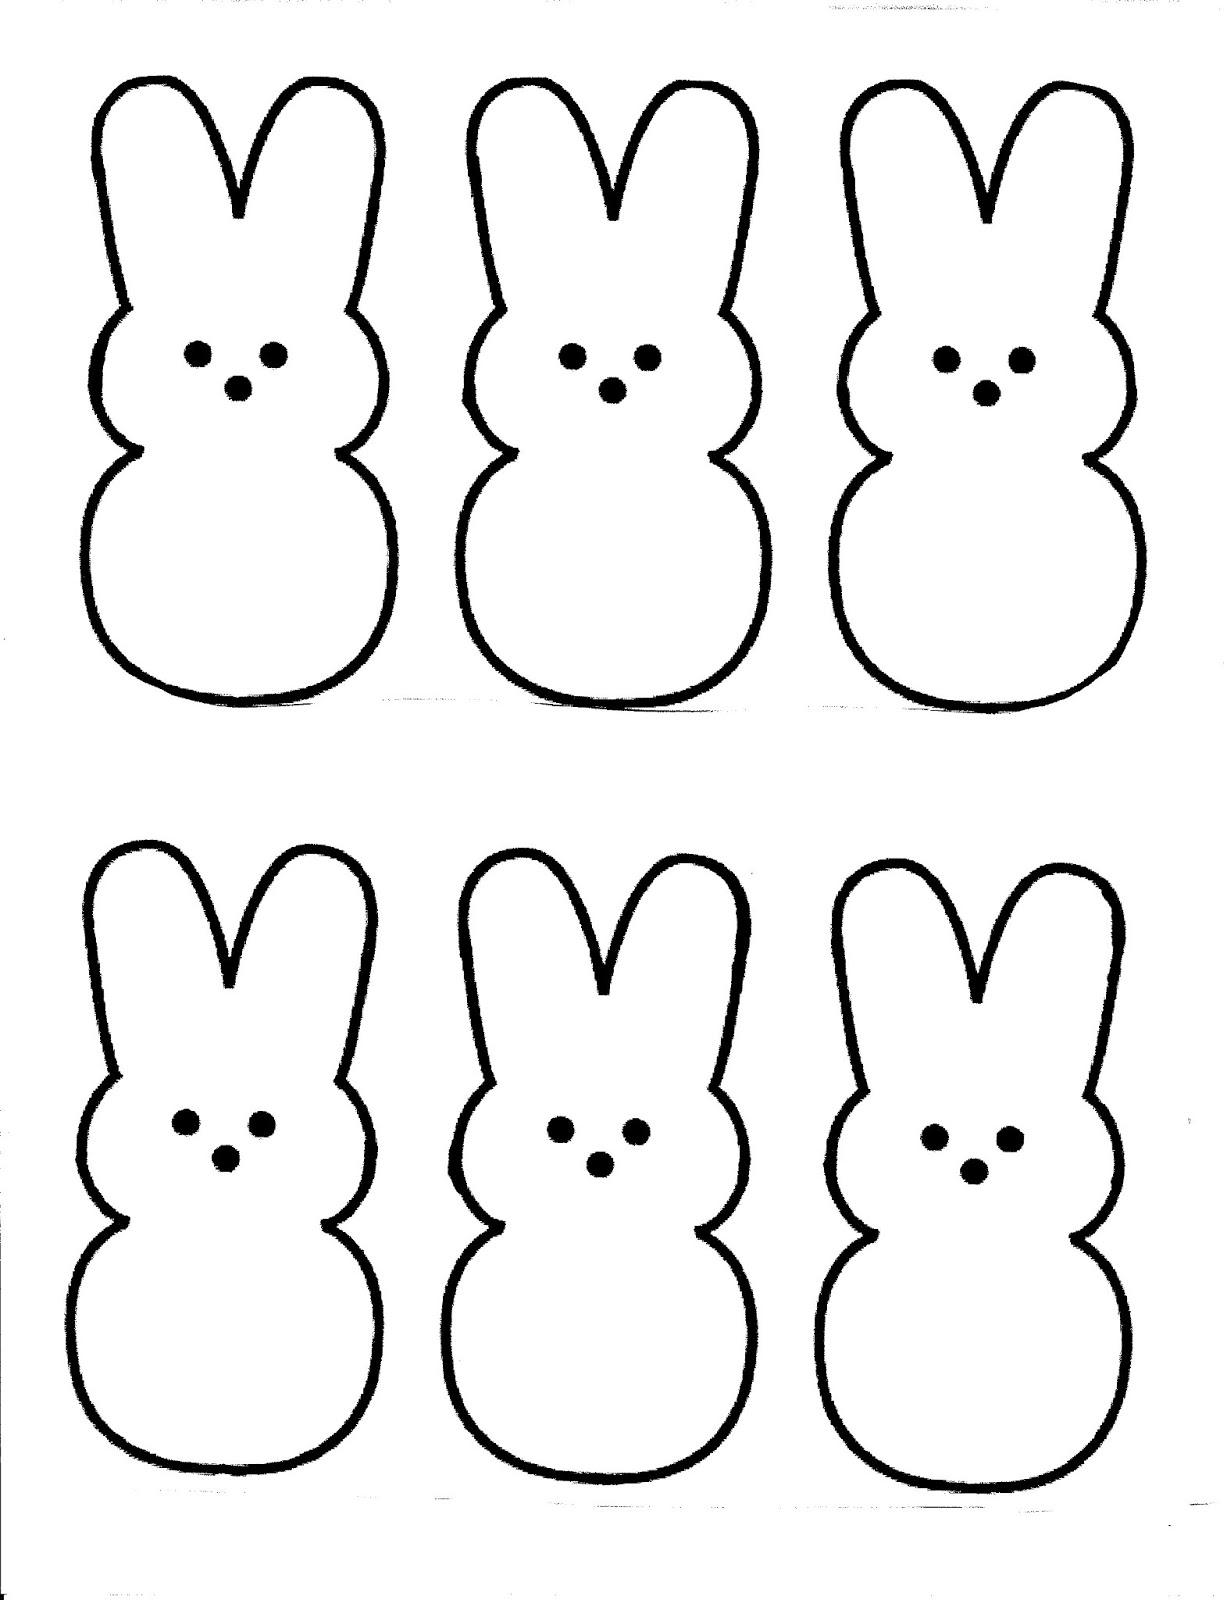 Free Peep Clipart Black And White, Download Free Clip Art.